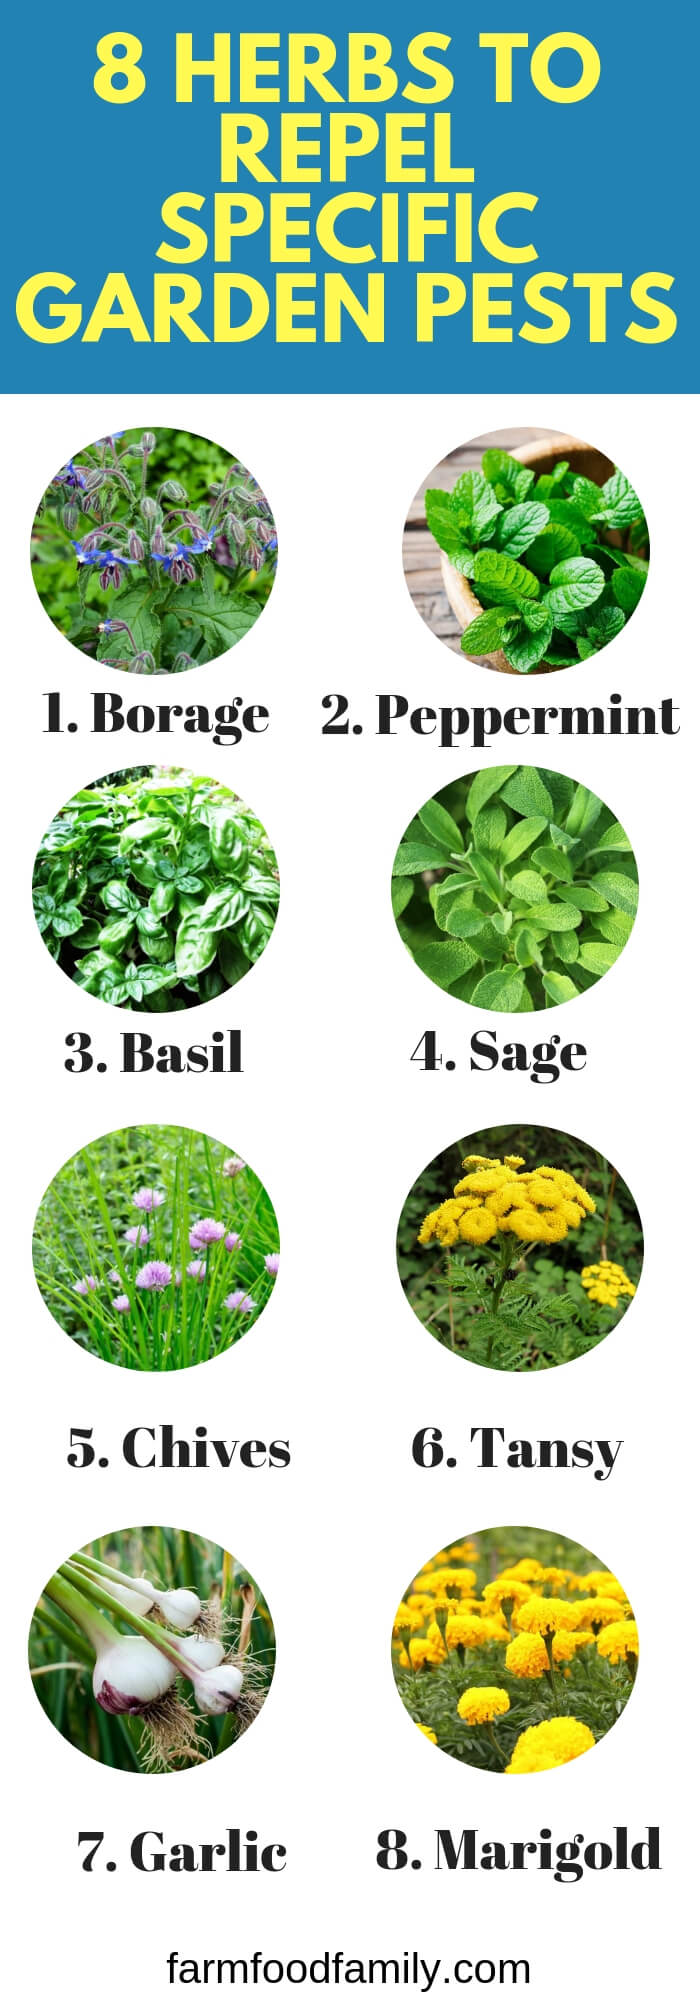 Herbs to Plant to Repel Specific Garden Pests